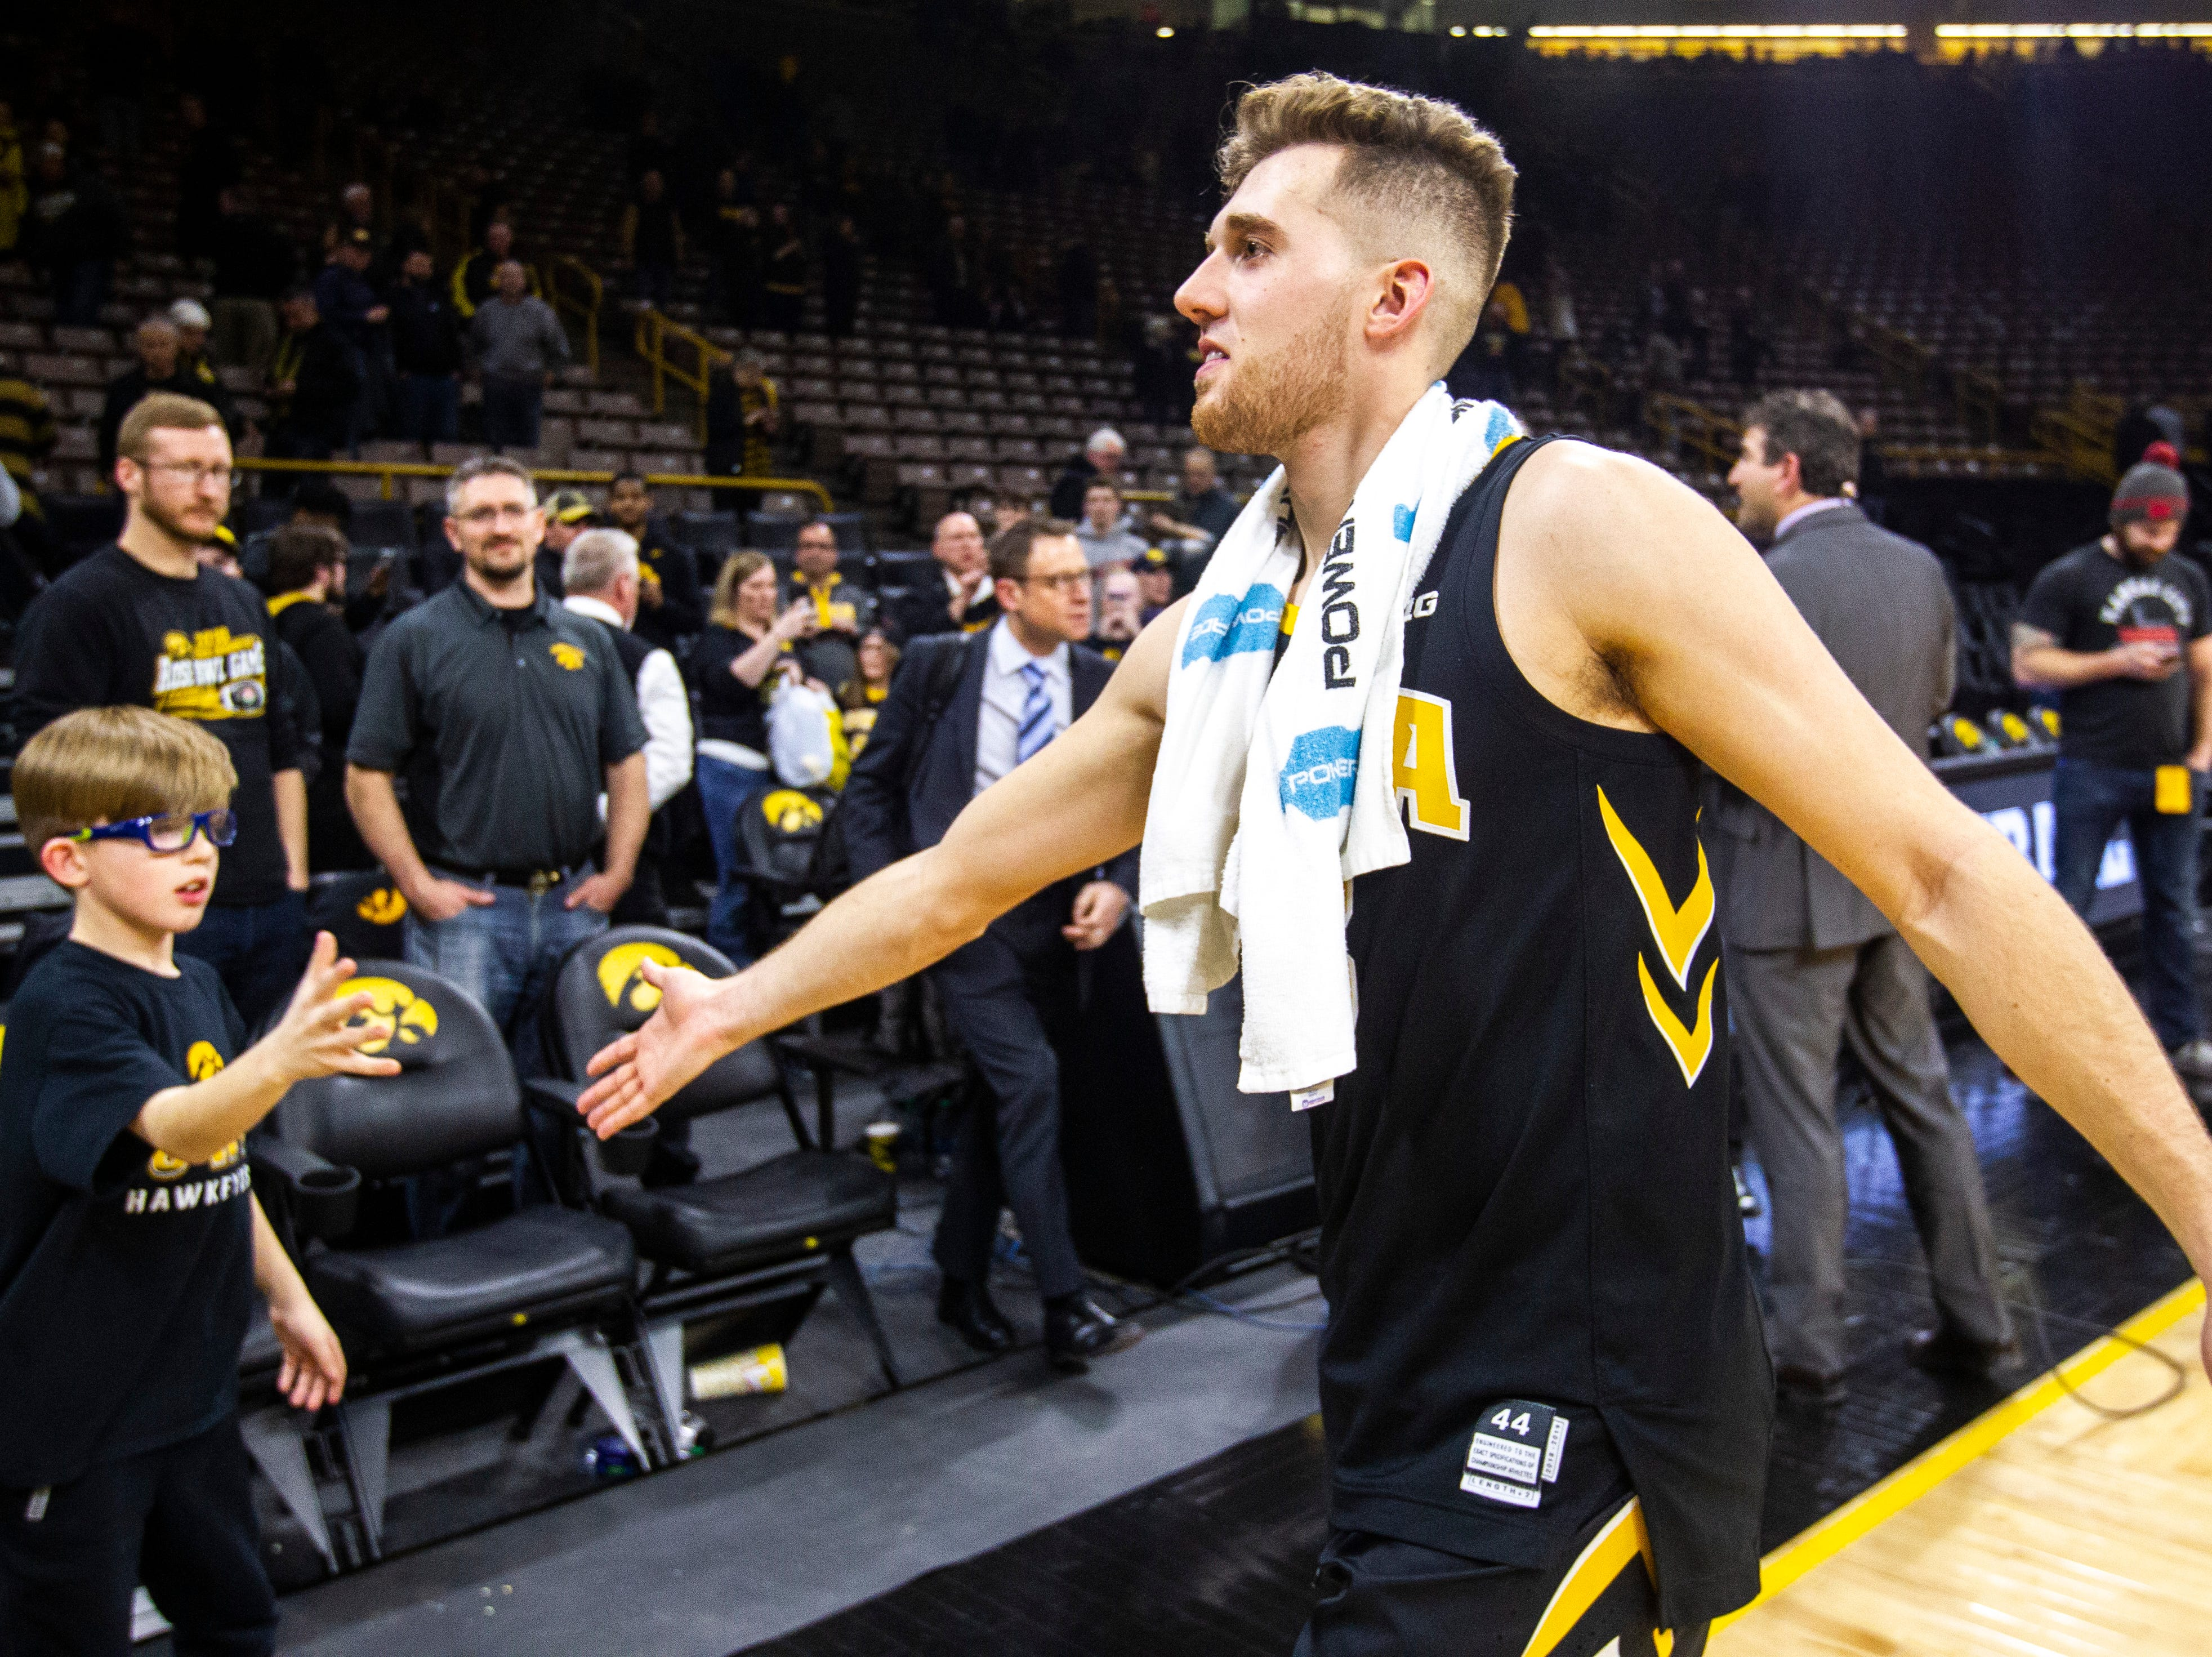 Iowa guard Jordan Bohannon (3) high-fives a fan after a NCAA Big Ten Conference men's basketball game on Friday, Feb. 22, 2019 at Carver-Hawkeye Arena in Iowa City, Iowa.